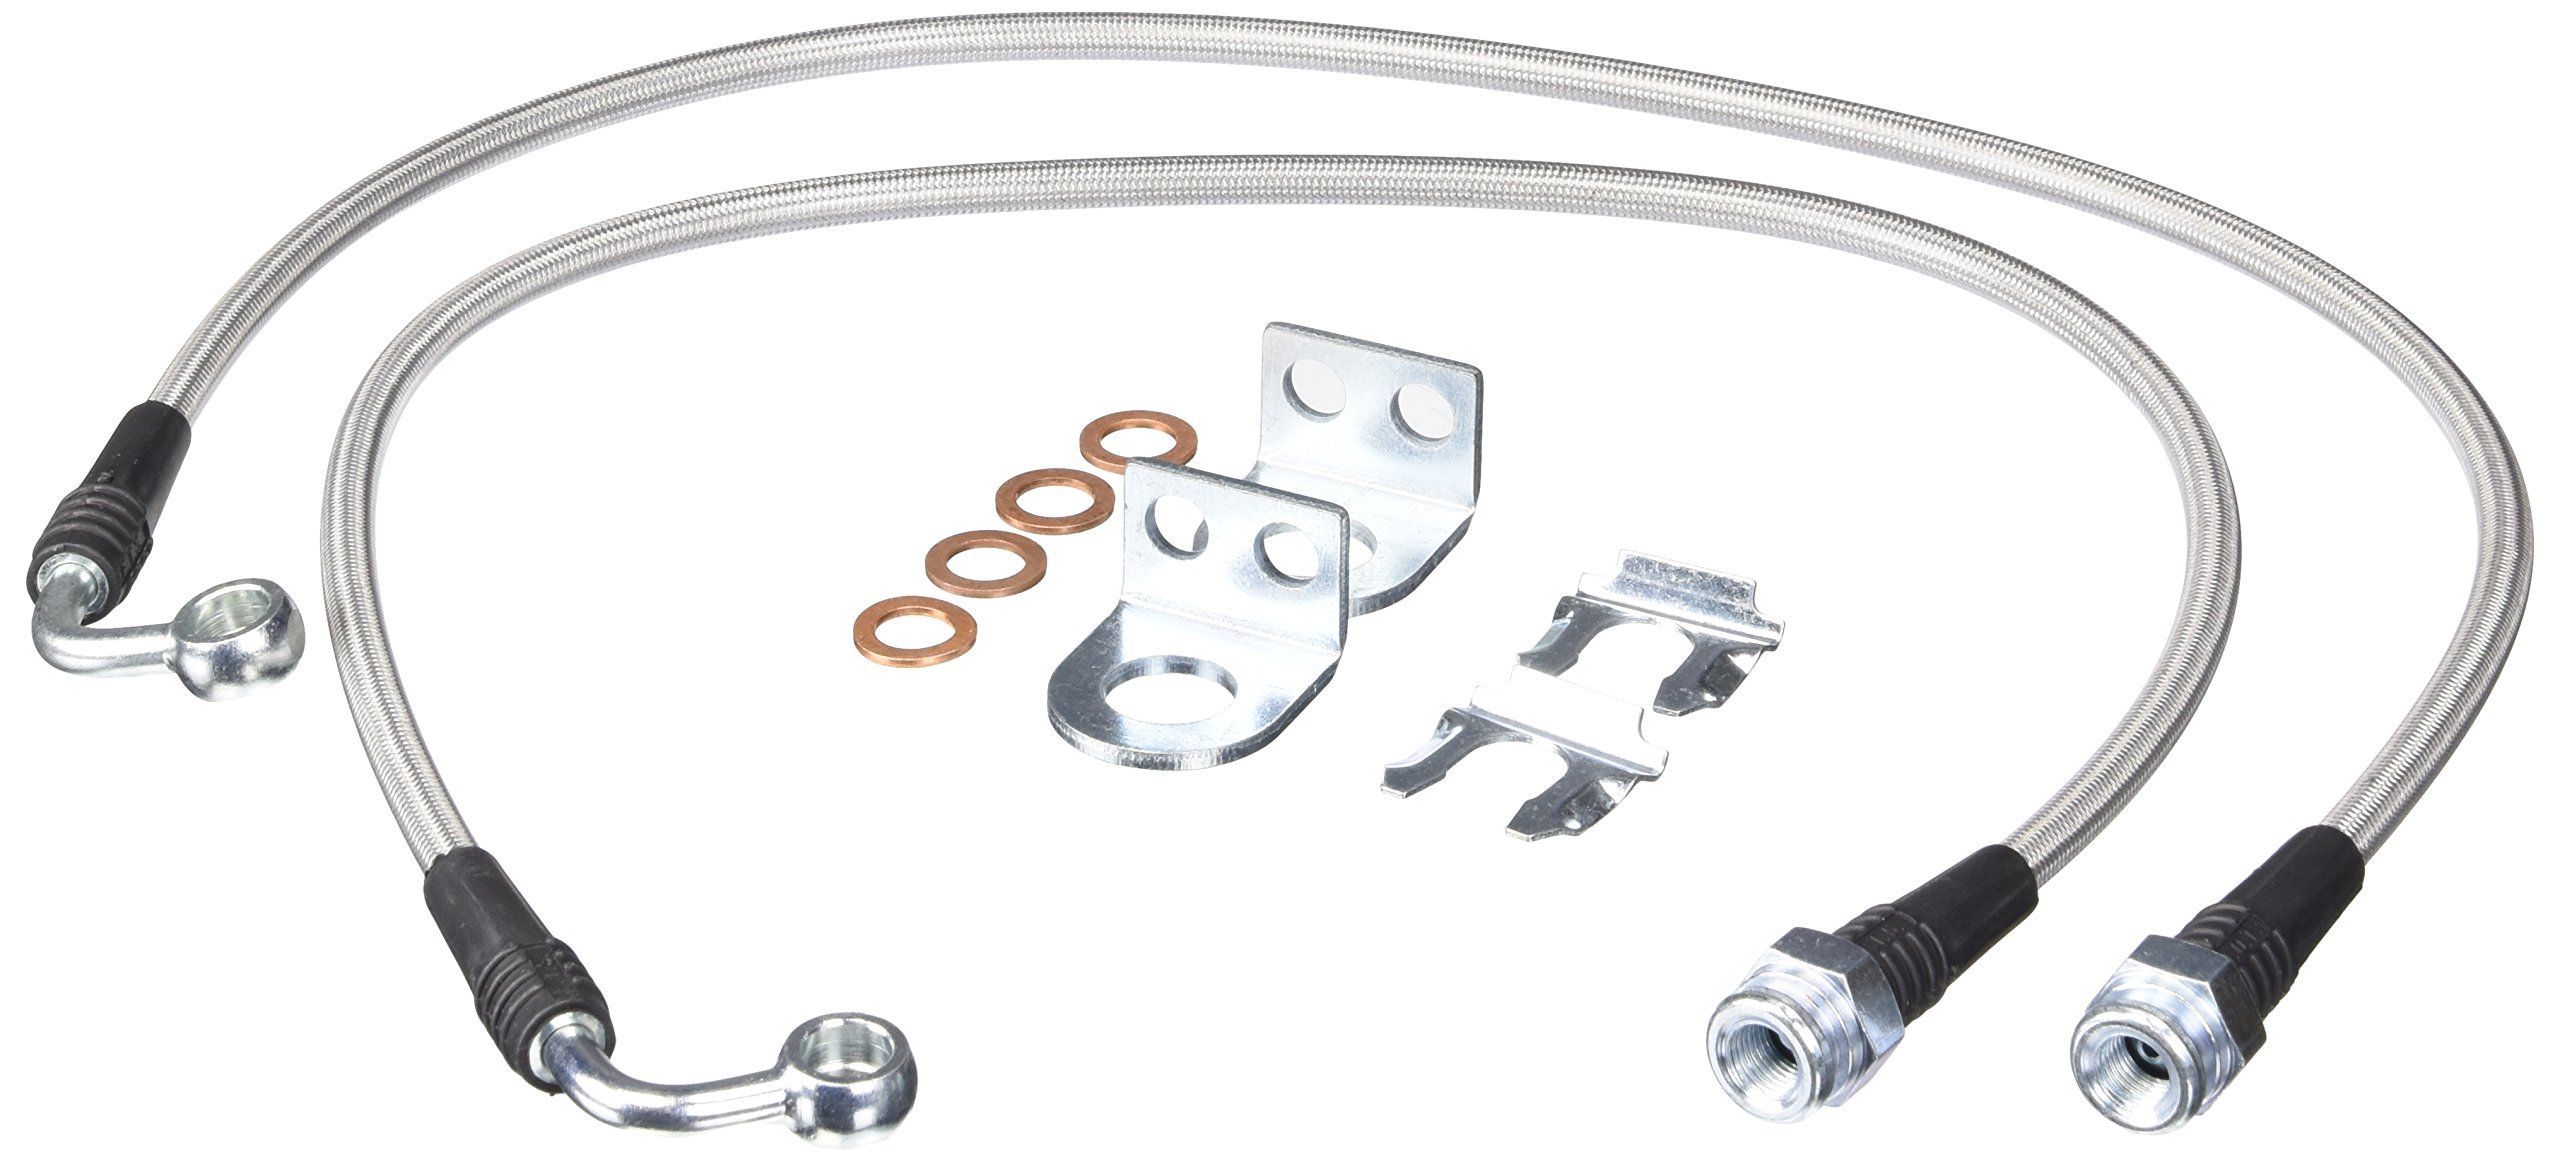 TeraFlex 4353310 26'' Front Brake Line Kit with Hardware